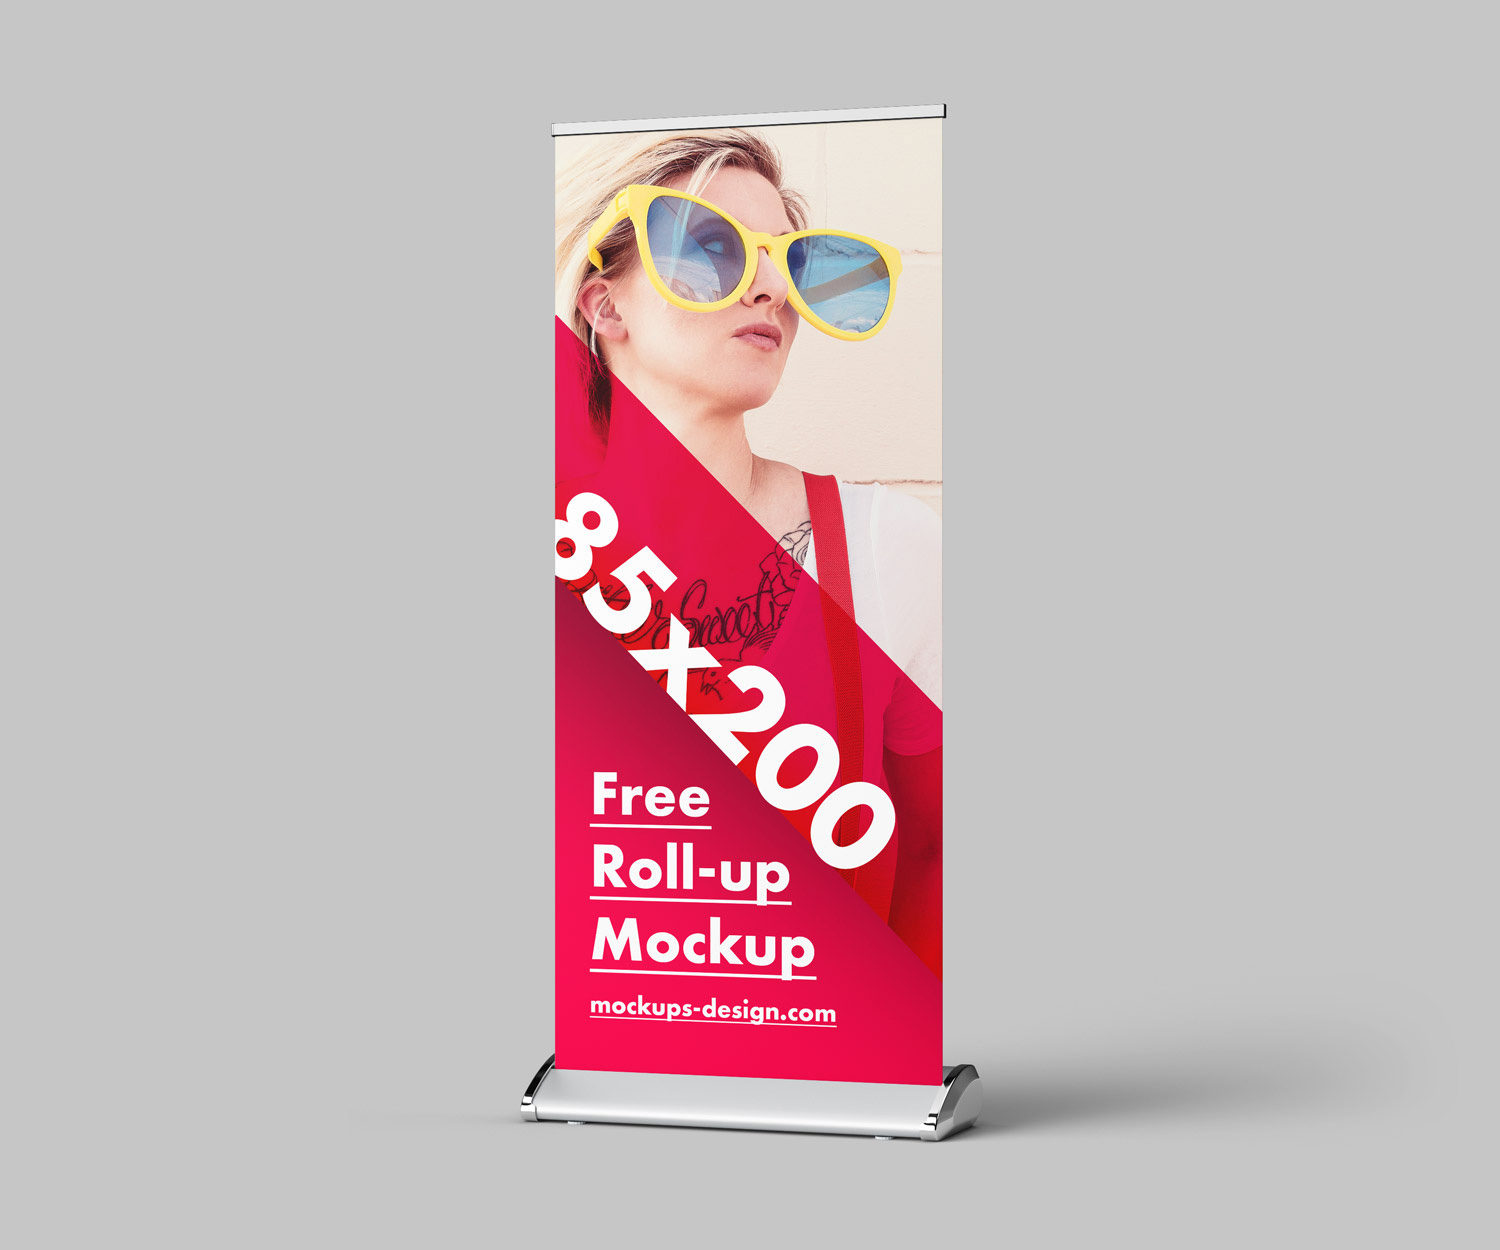 Roll-Up Mockup Free PSD